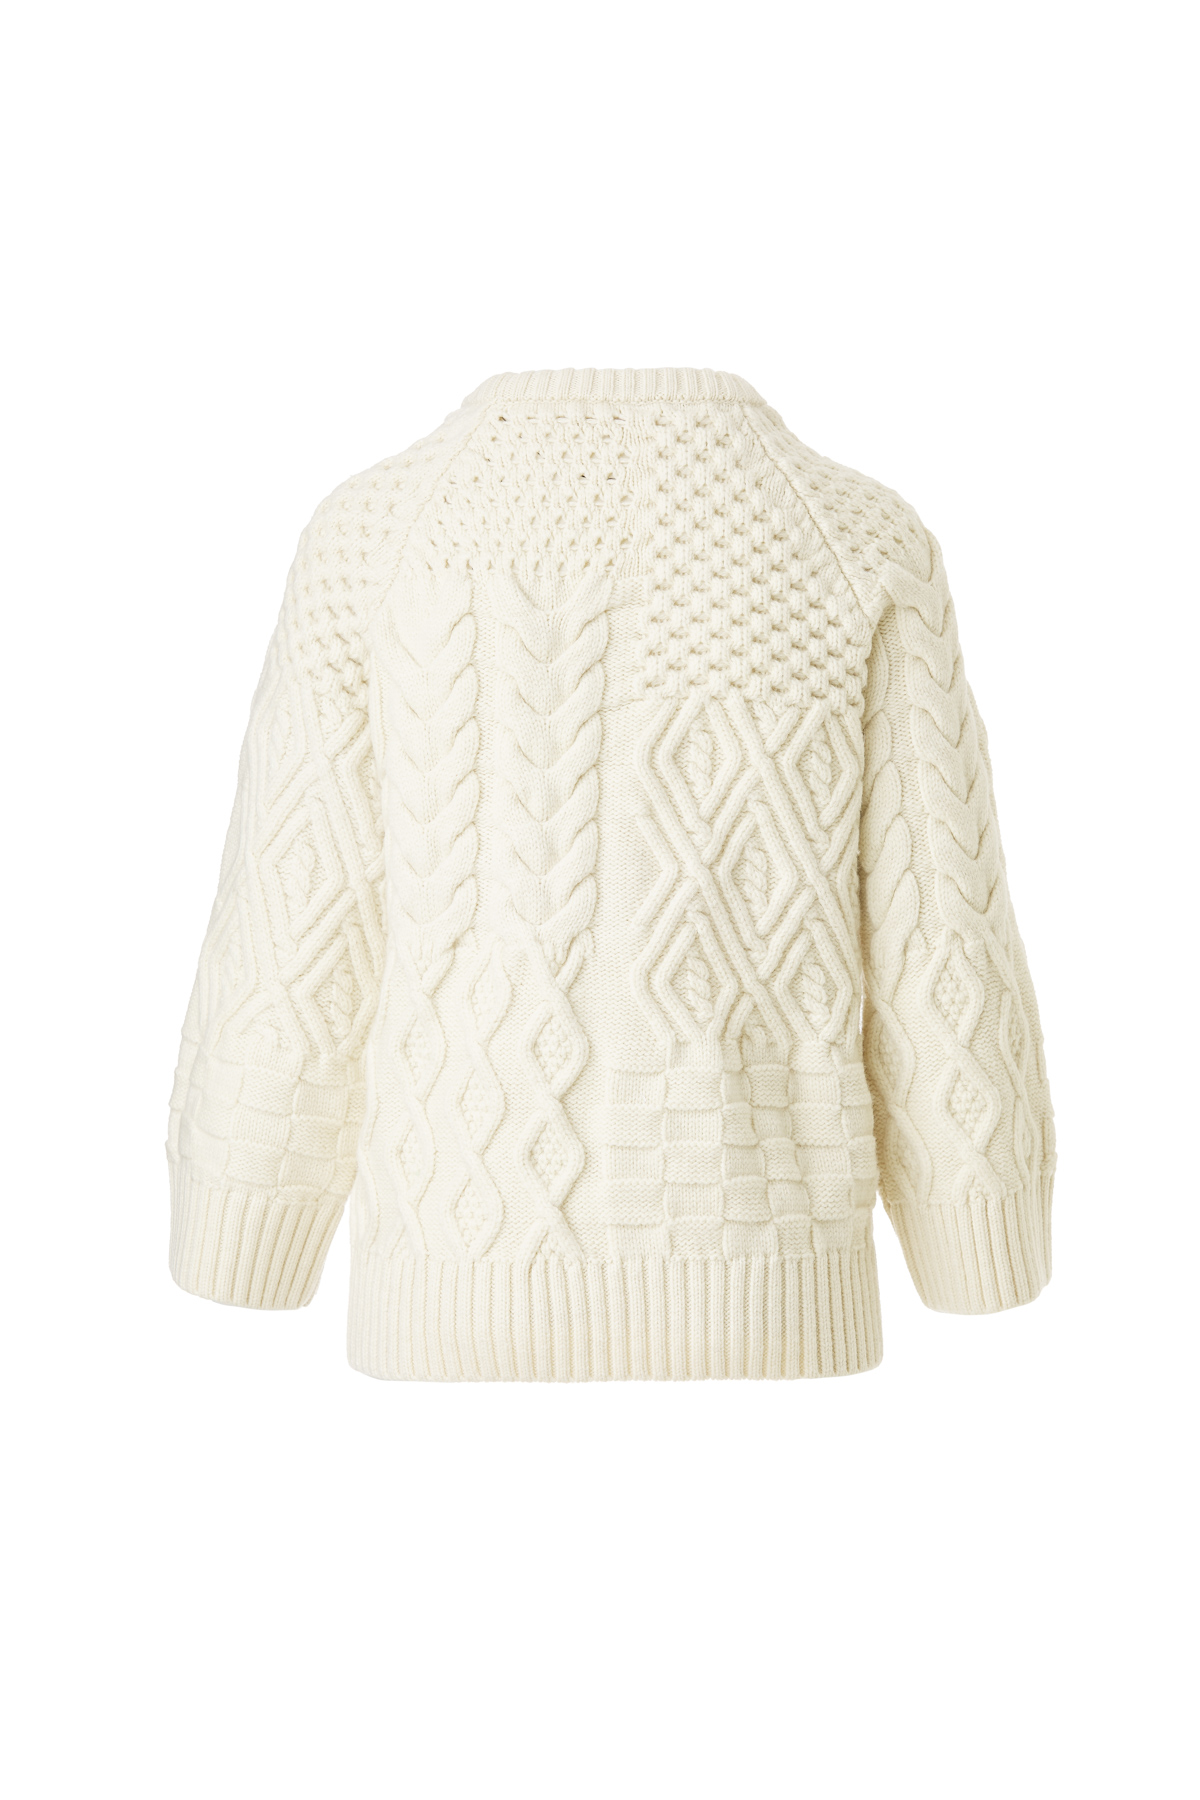 Knitted Structured Sweater by Ami Amalia on curated-crowd.com